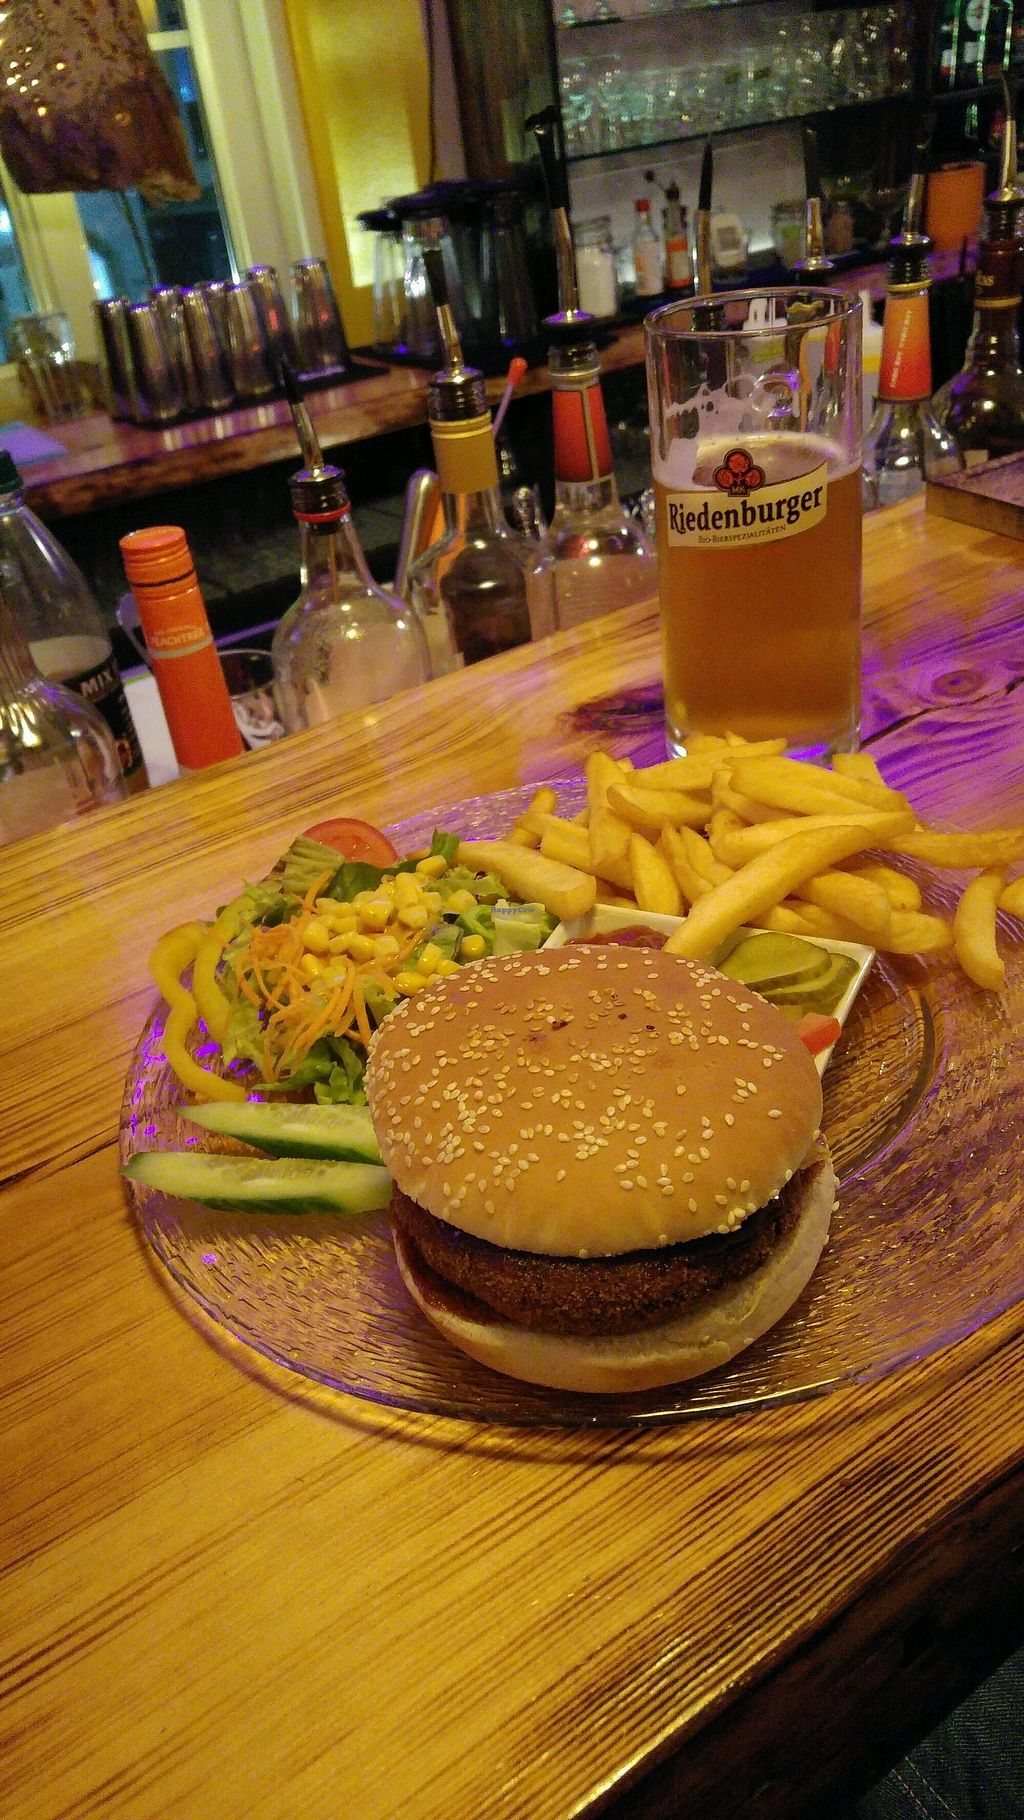 """Photo of Swept Away  by <a href=""""/members/profile/lawal"""">lawal</a> <br/>very good vegan bbq burger <br/> October 25, 2017  - <a href='/contact/abuse/image/5042/318824'>Report</a>"""